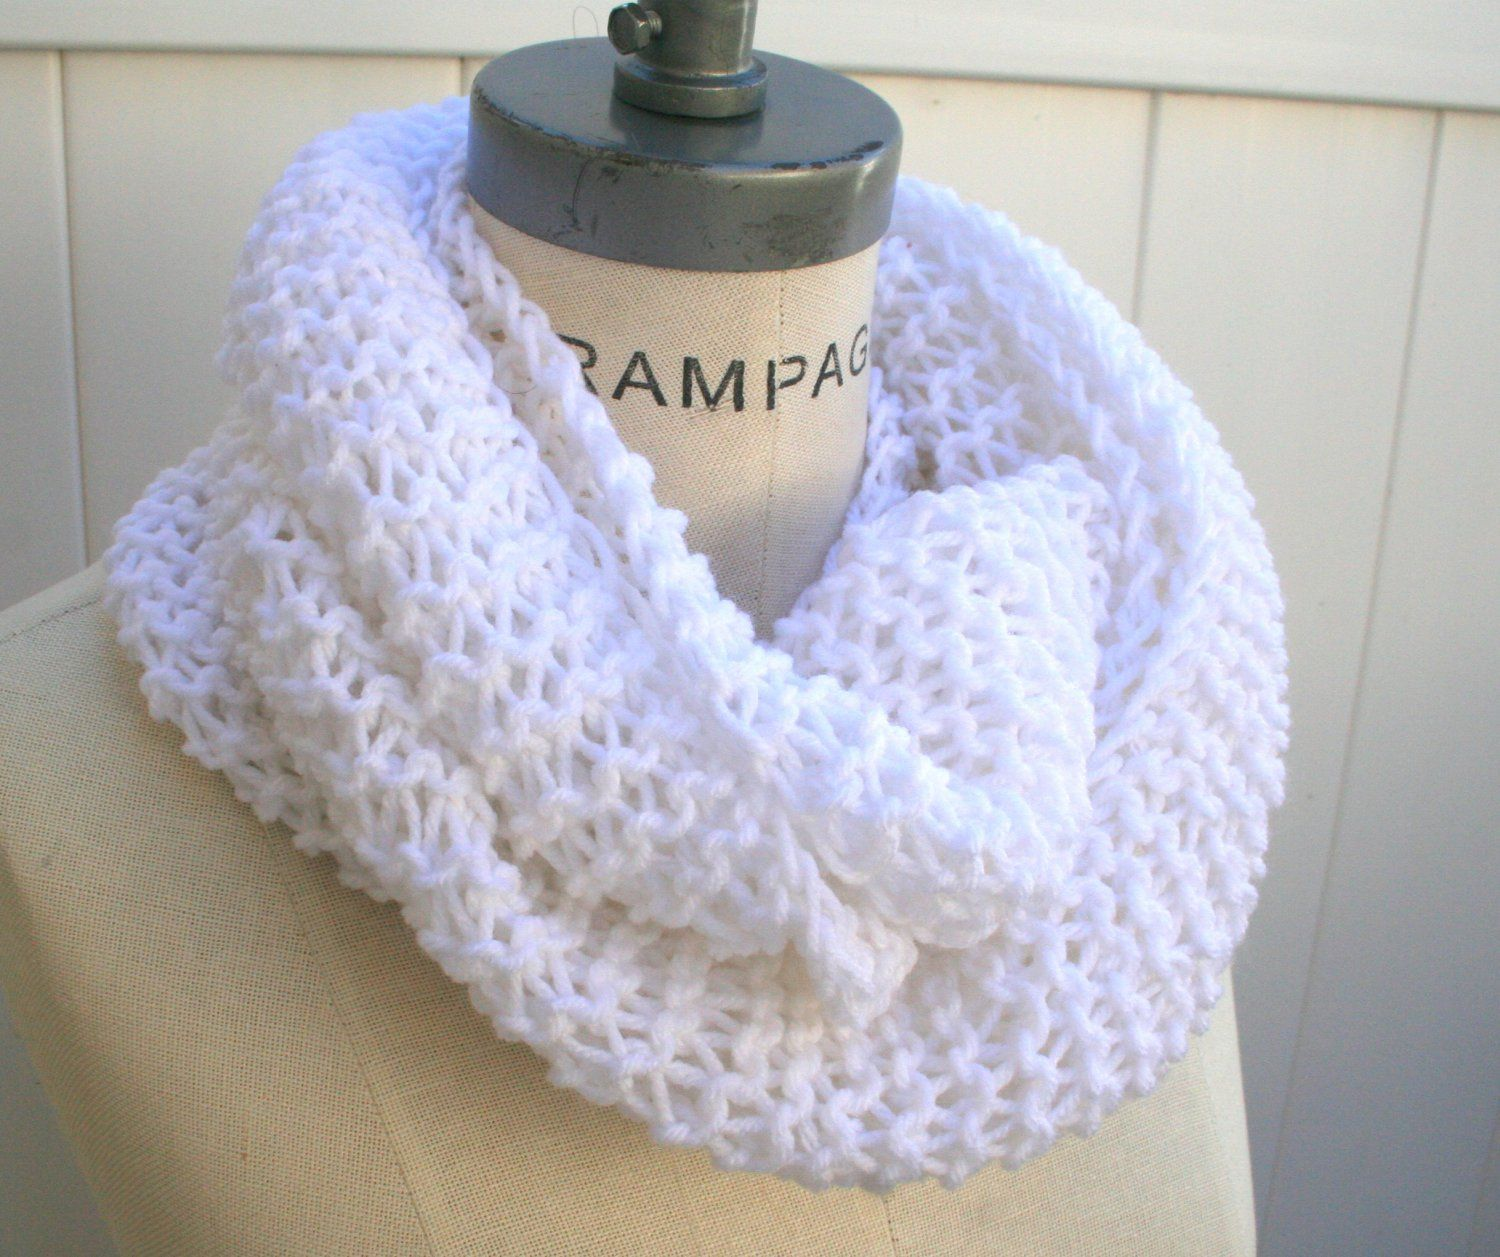 White knit infinity scarf hand knit white cowl scarf chunky knit white knit infinity scarf hand knit white cowl scarf chunky knit cowl by piyoyo bankloansurffo Choice Image